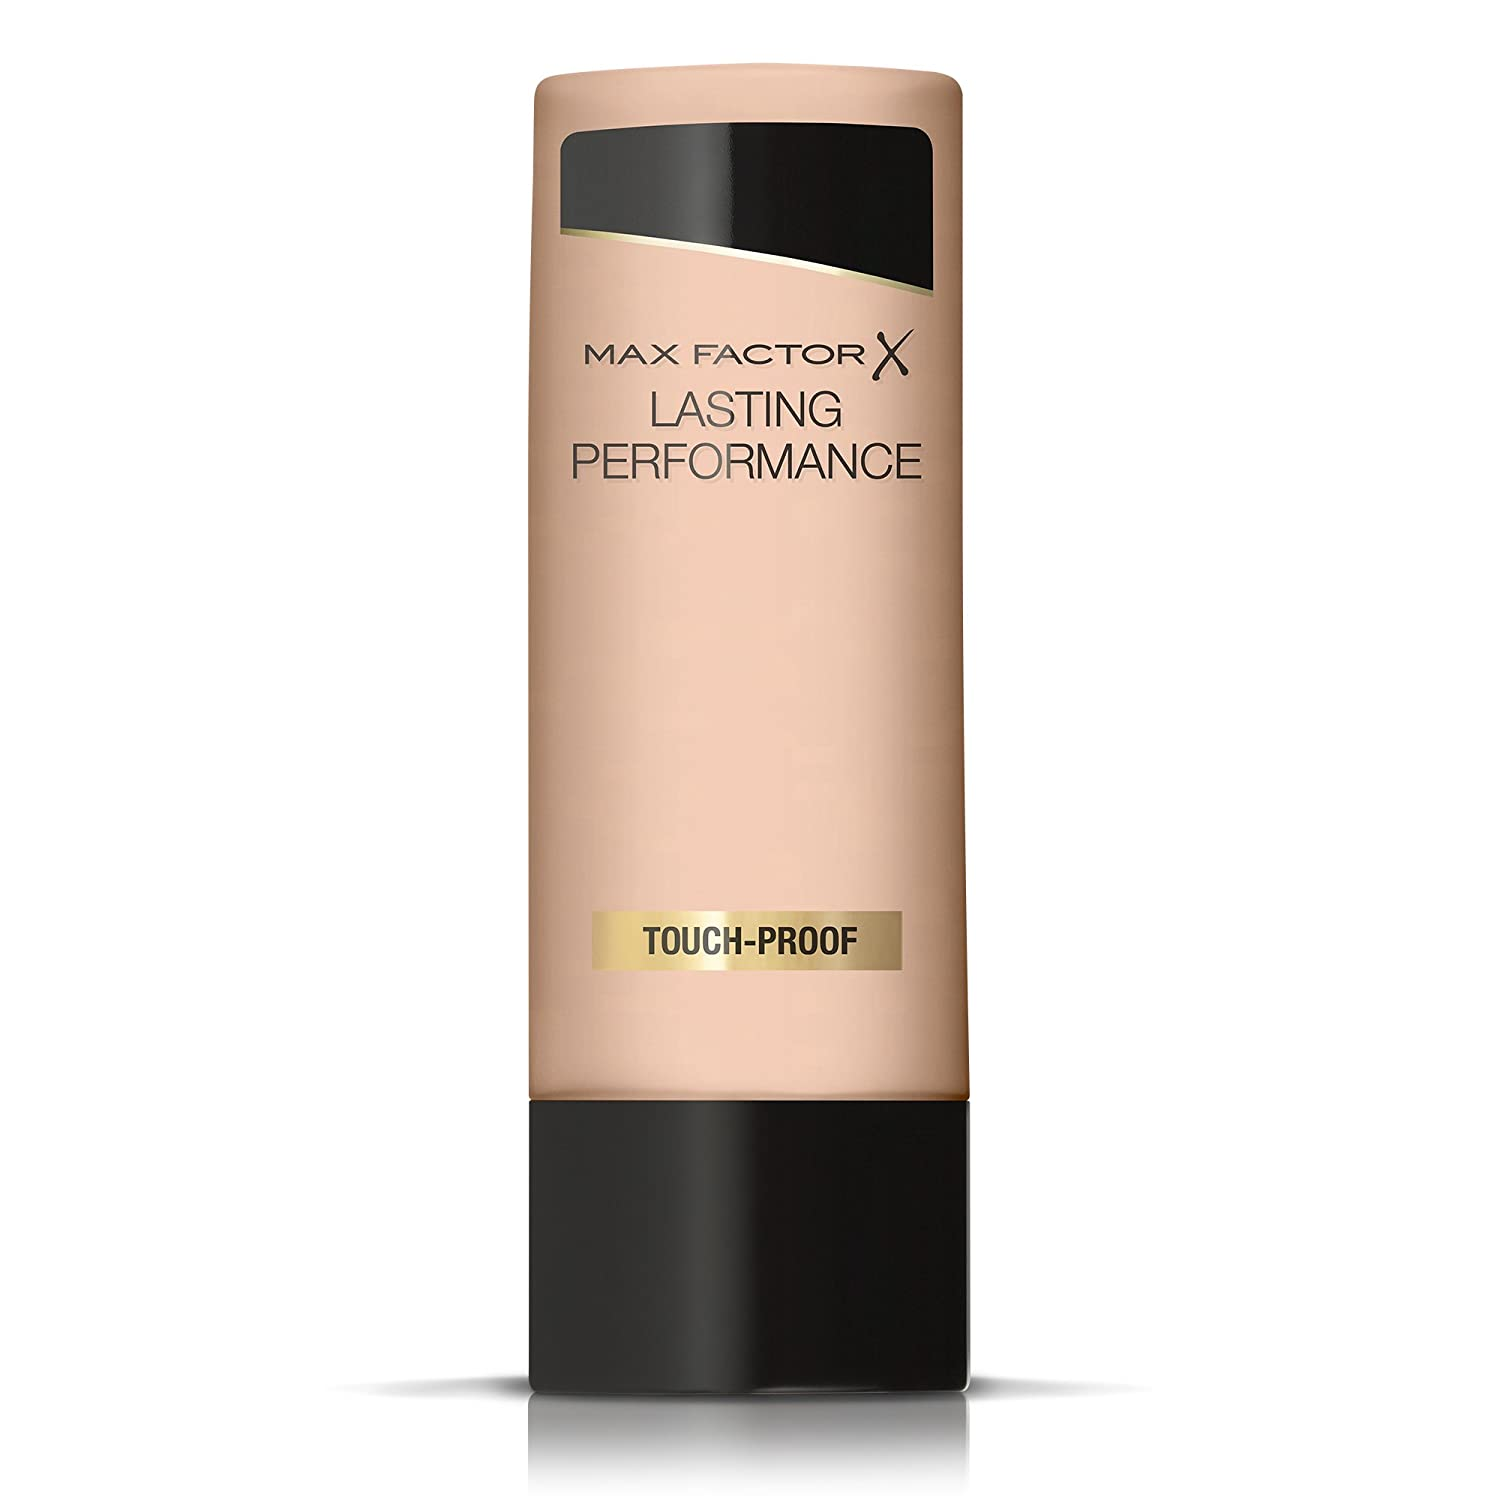 Max Factor Lasting Performance Long Lasting Foundation 101 Ivory Beige